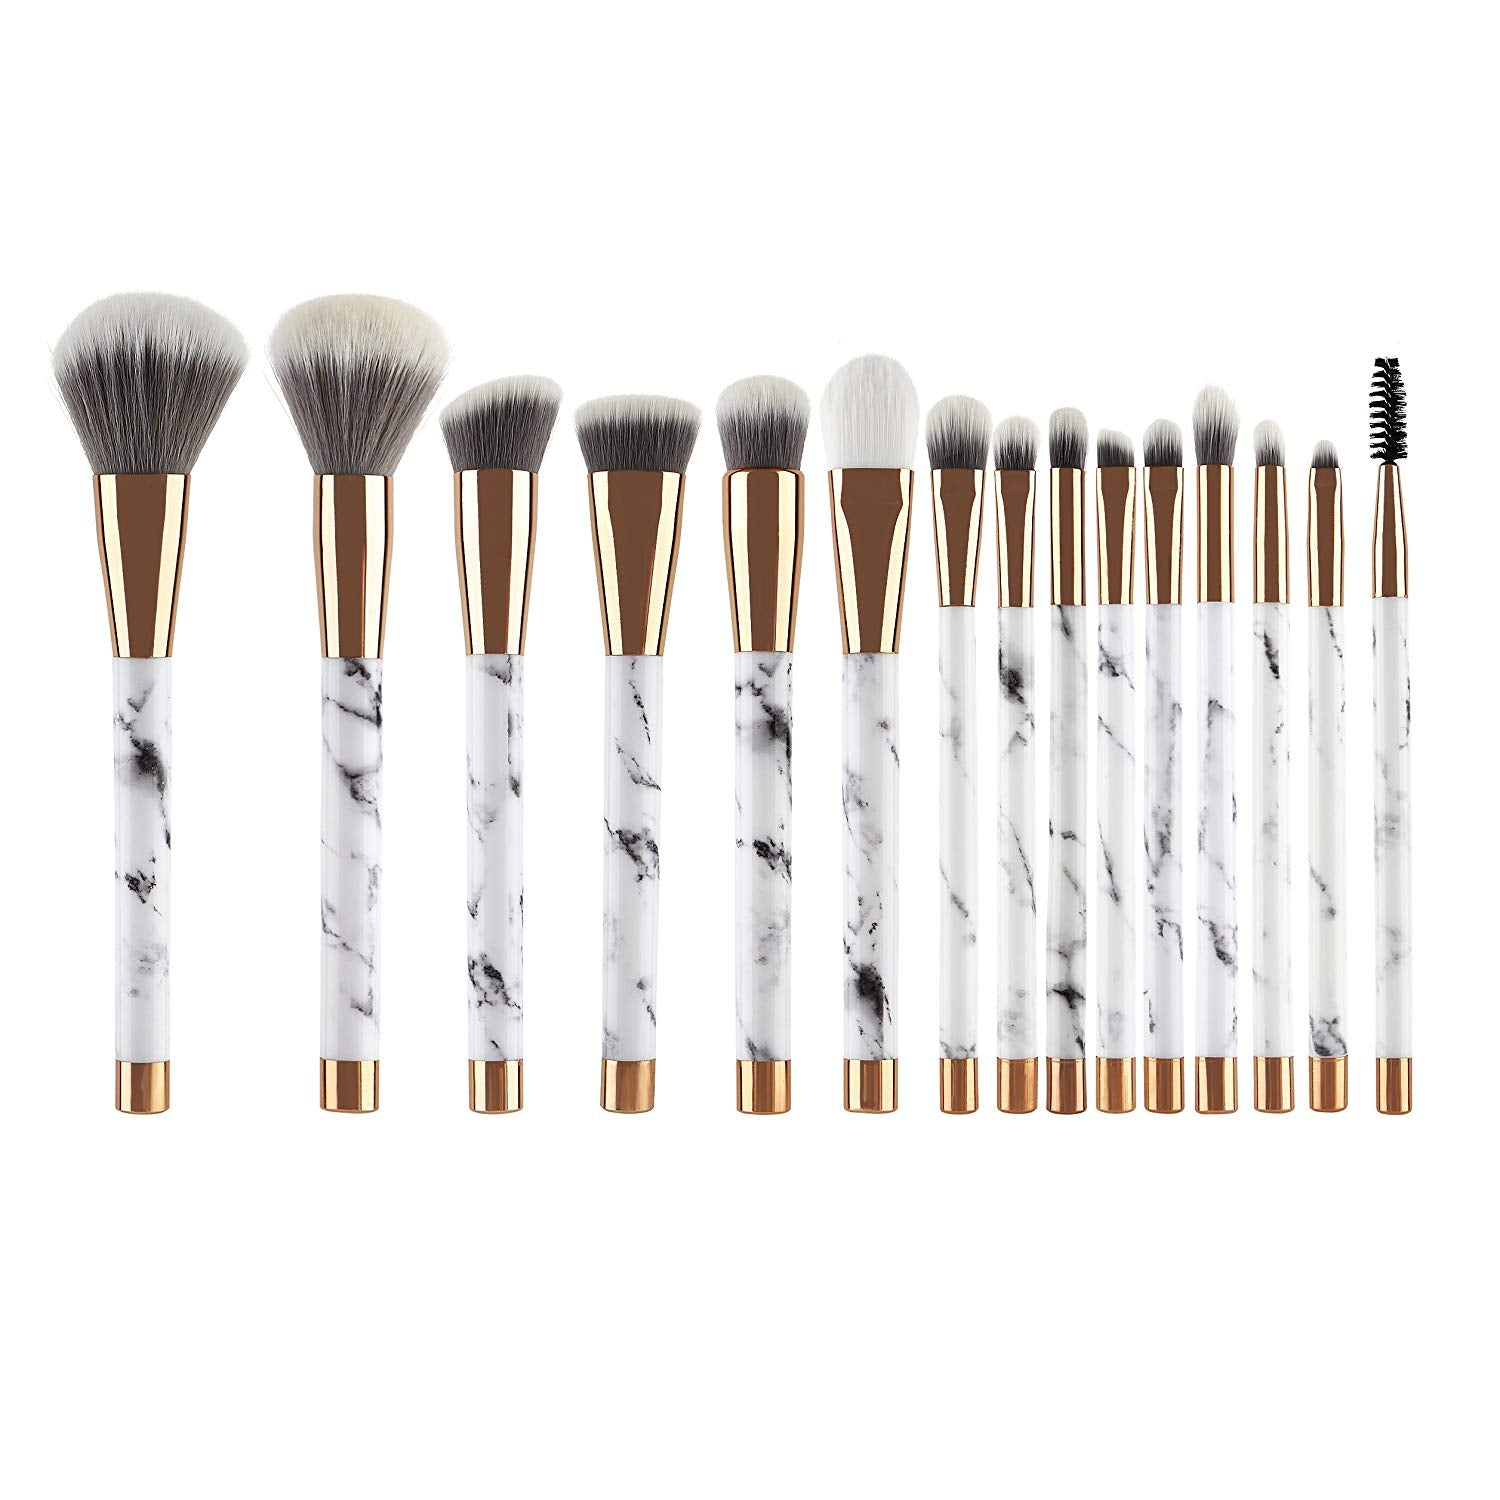 LLESS Makeup Brushes 15 Pieces Makeup Brush Set Premium Face Eyeliner Blush Contour Foundation Cosmetic Brushes for Powder Liquid Cream